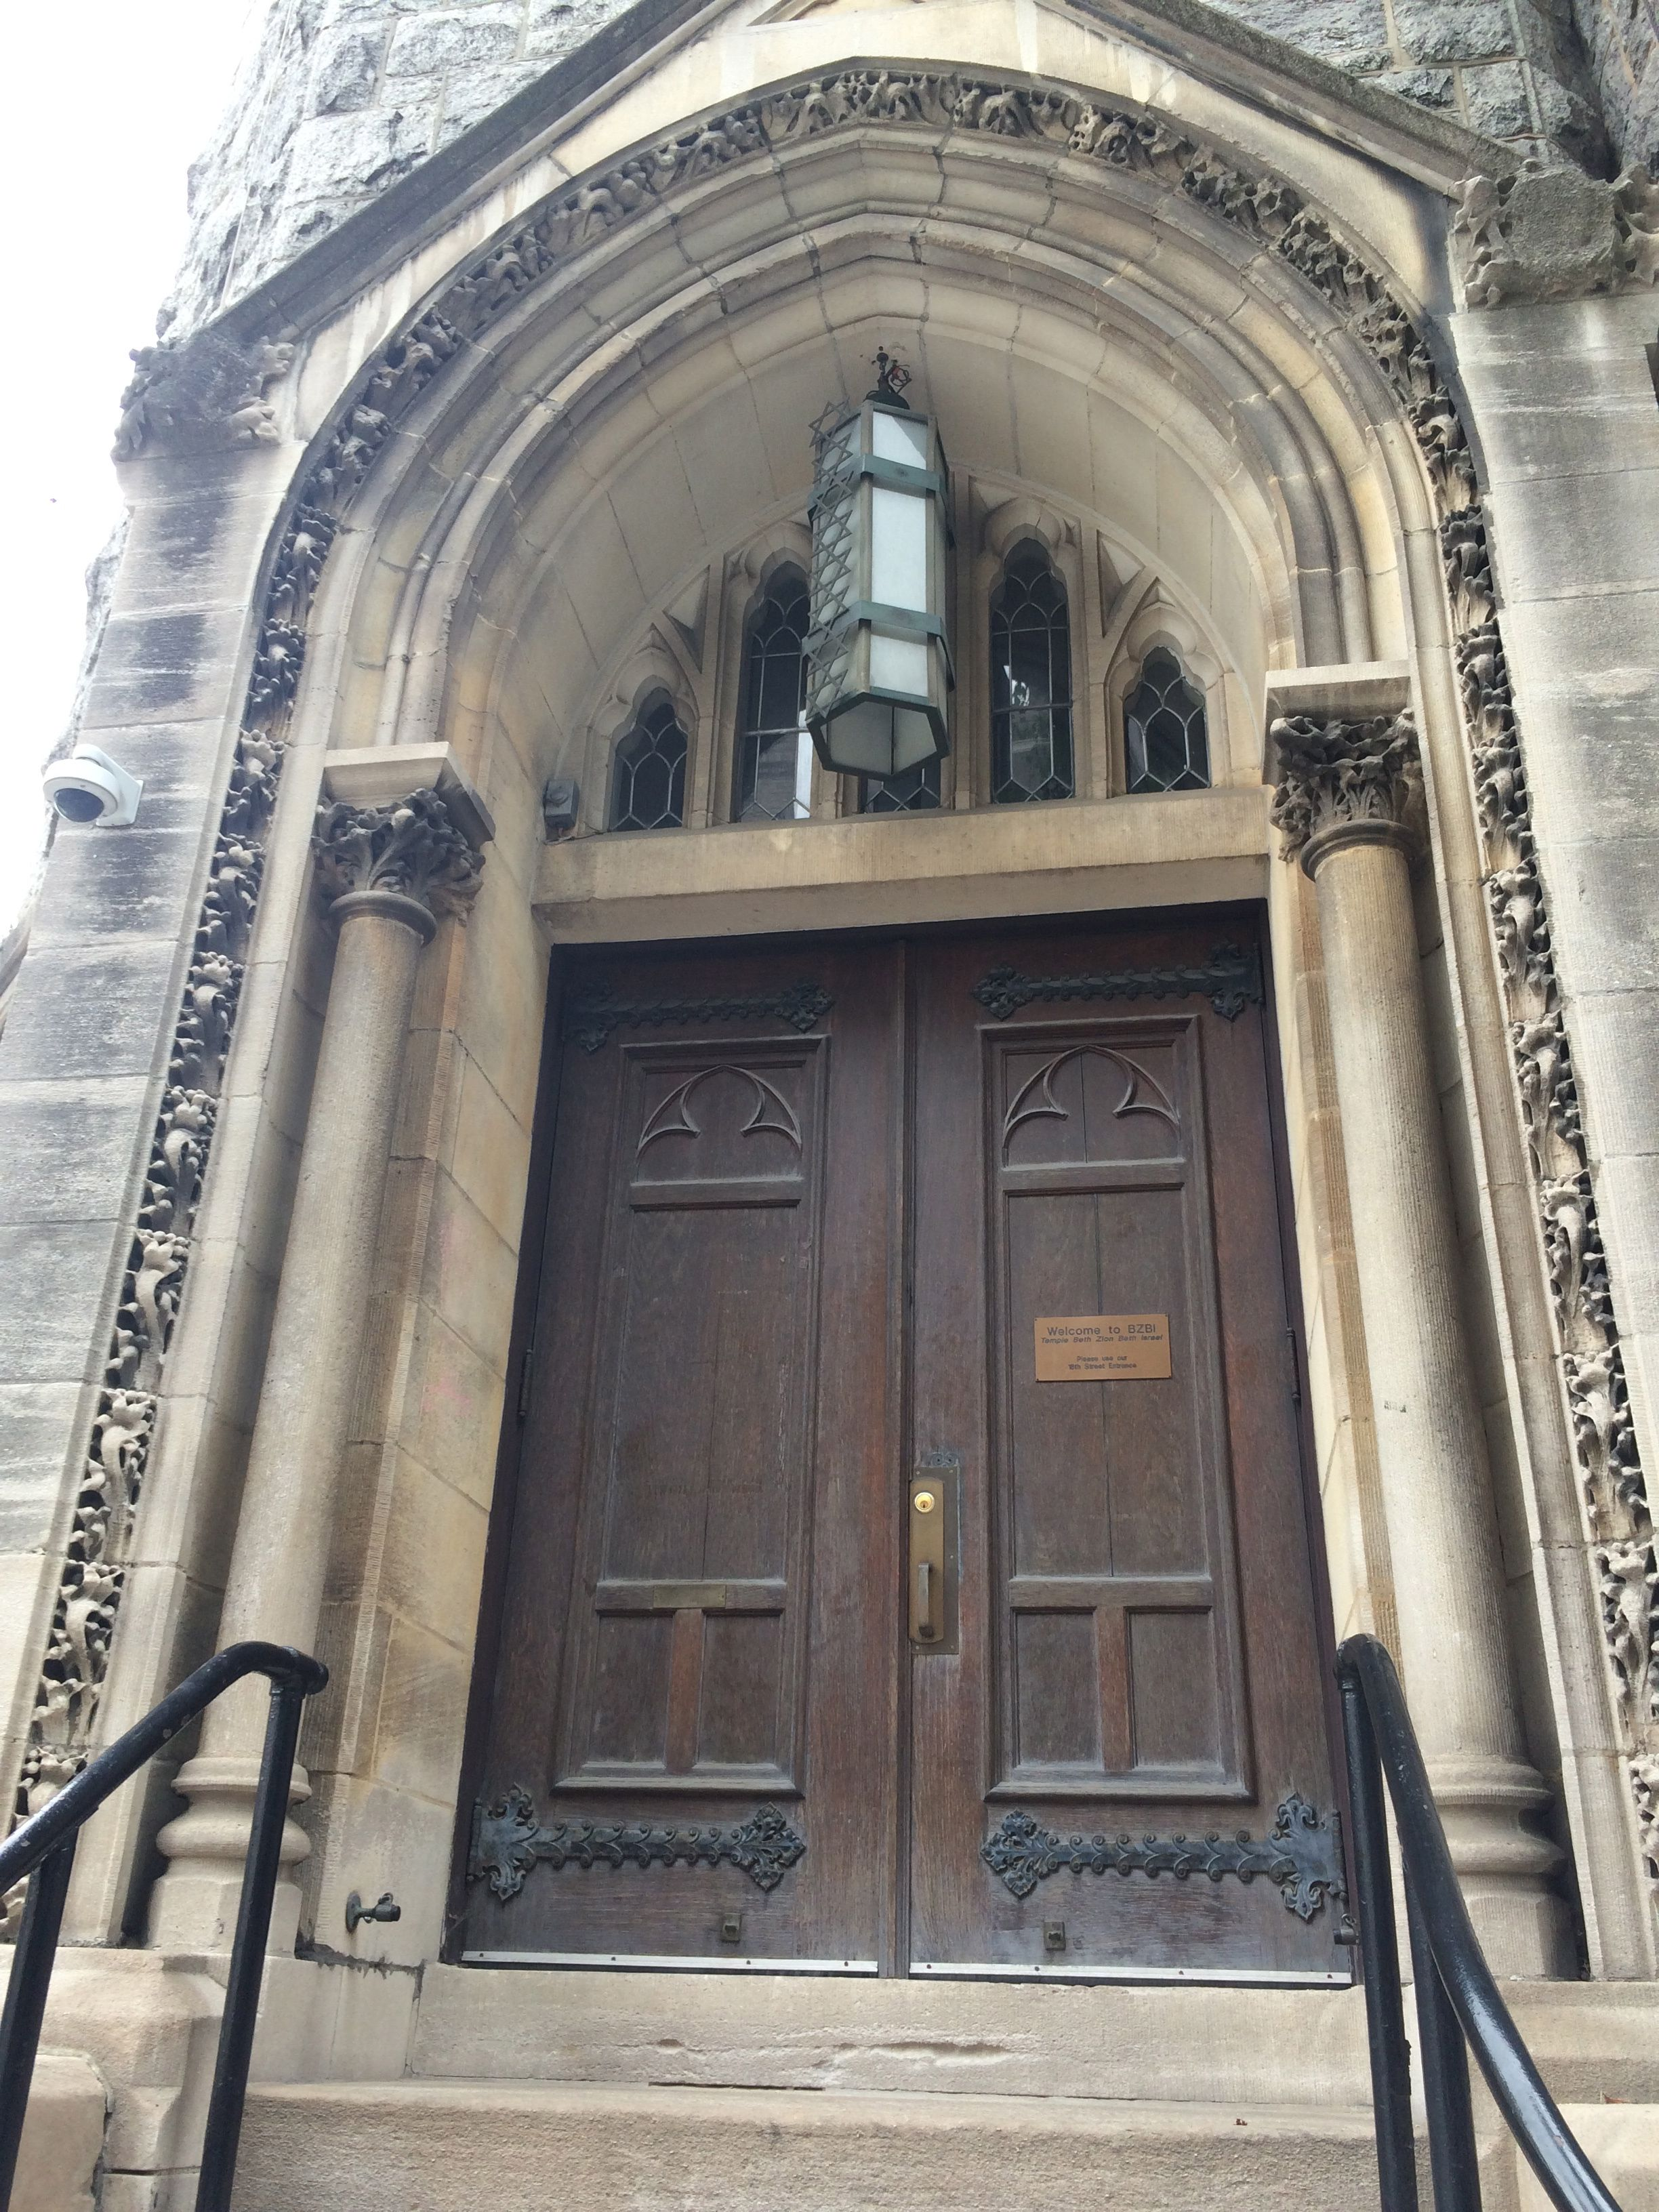 Door-love in Rittenhouse Square, Beth Zion Beth Israel Synagogue